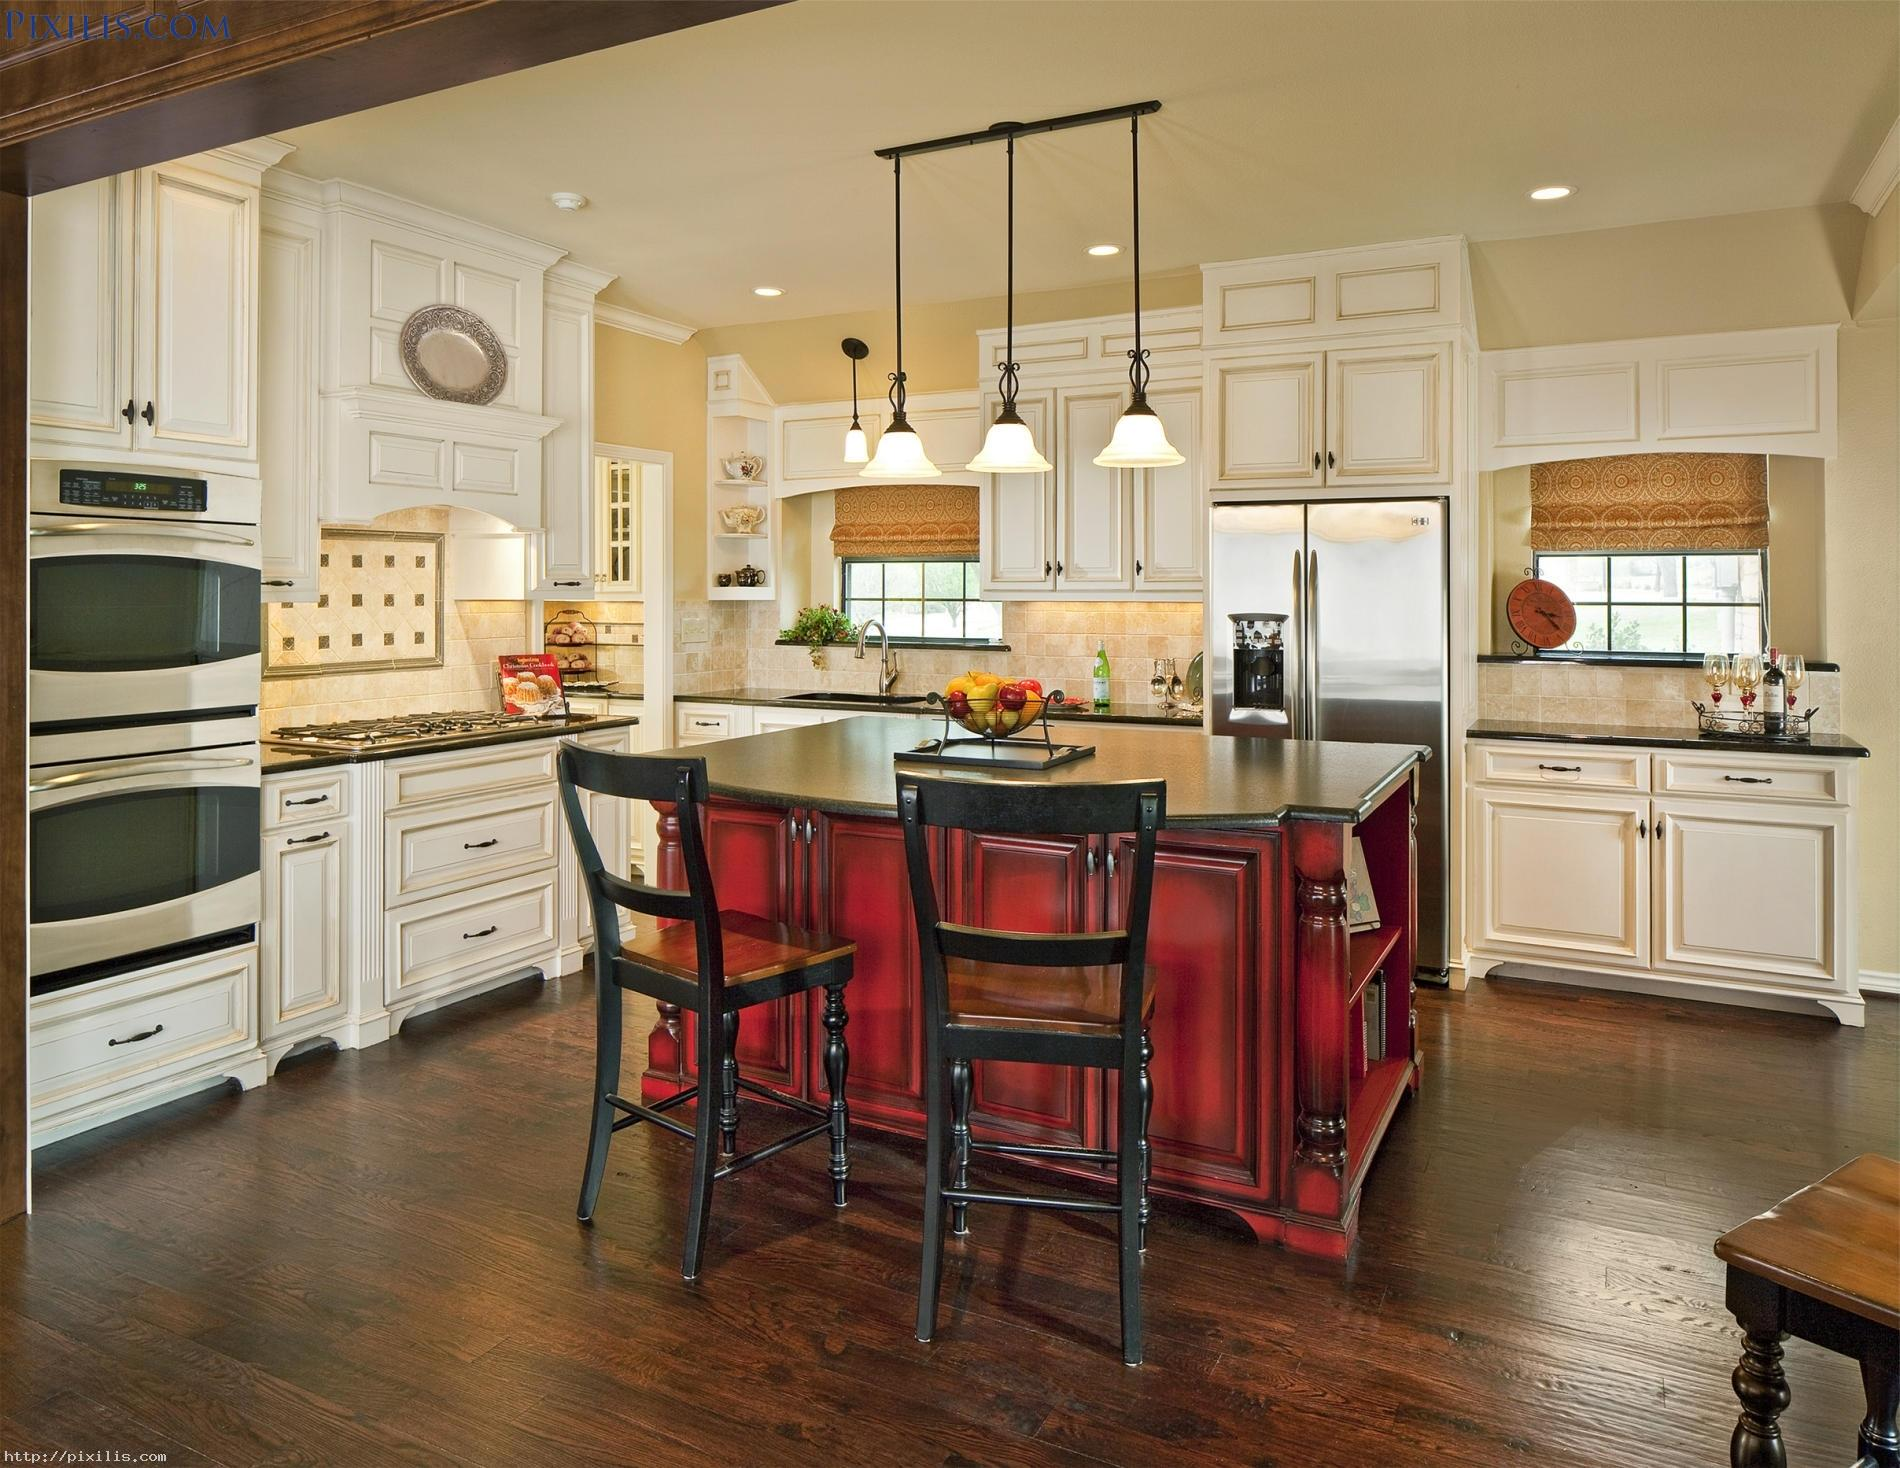 Cozy Full Size of Kitchen: Kitchen Light Fixture Industrial Lighting Can Lights  Pendant kitchen island light fixtures